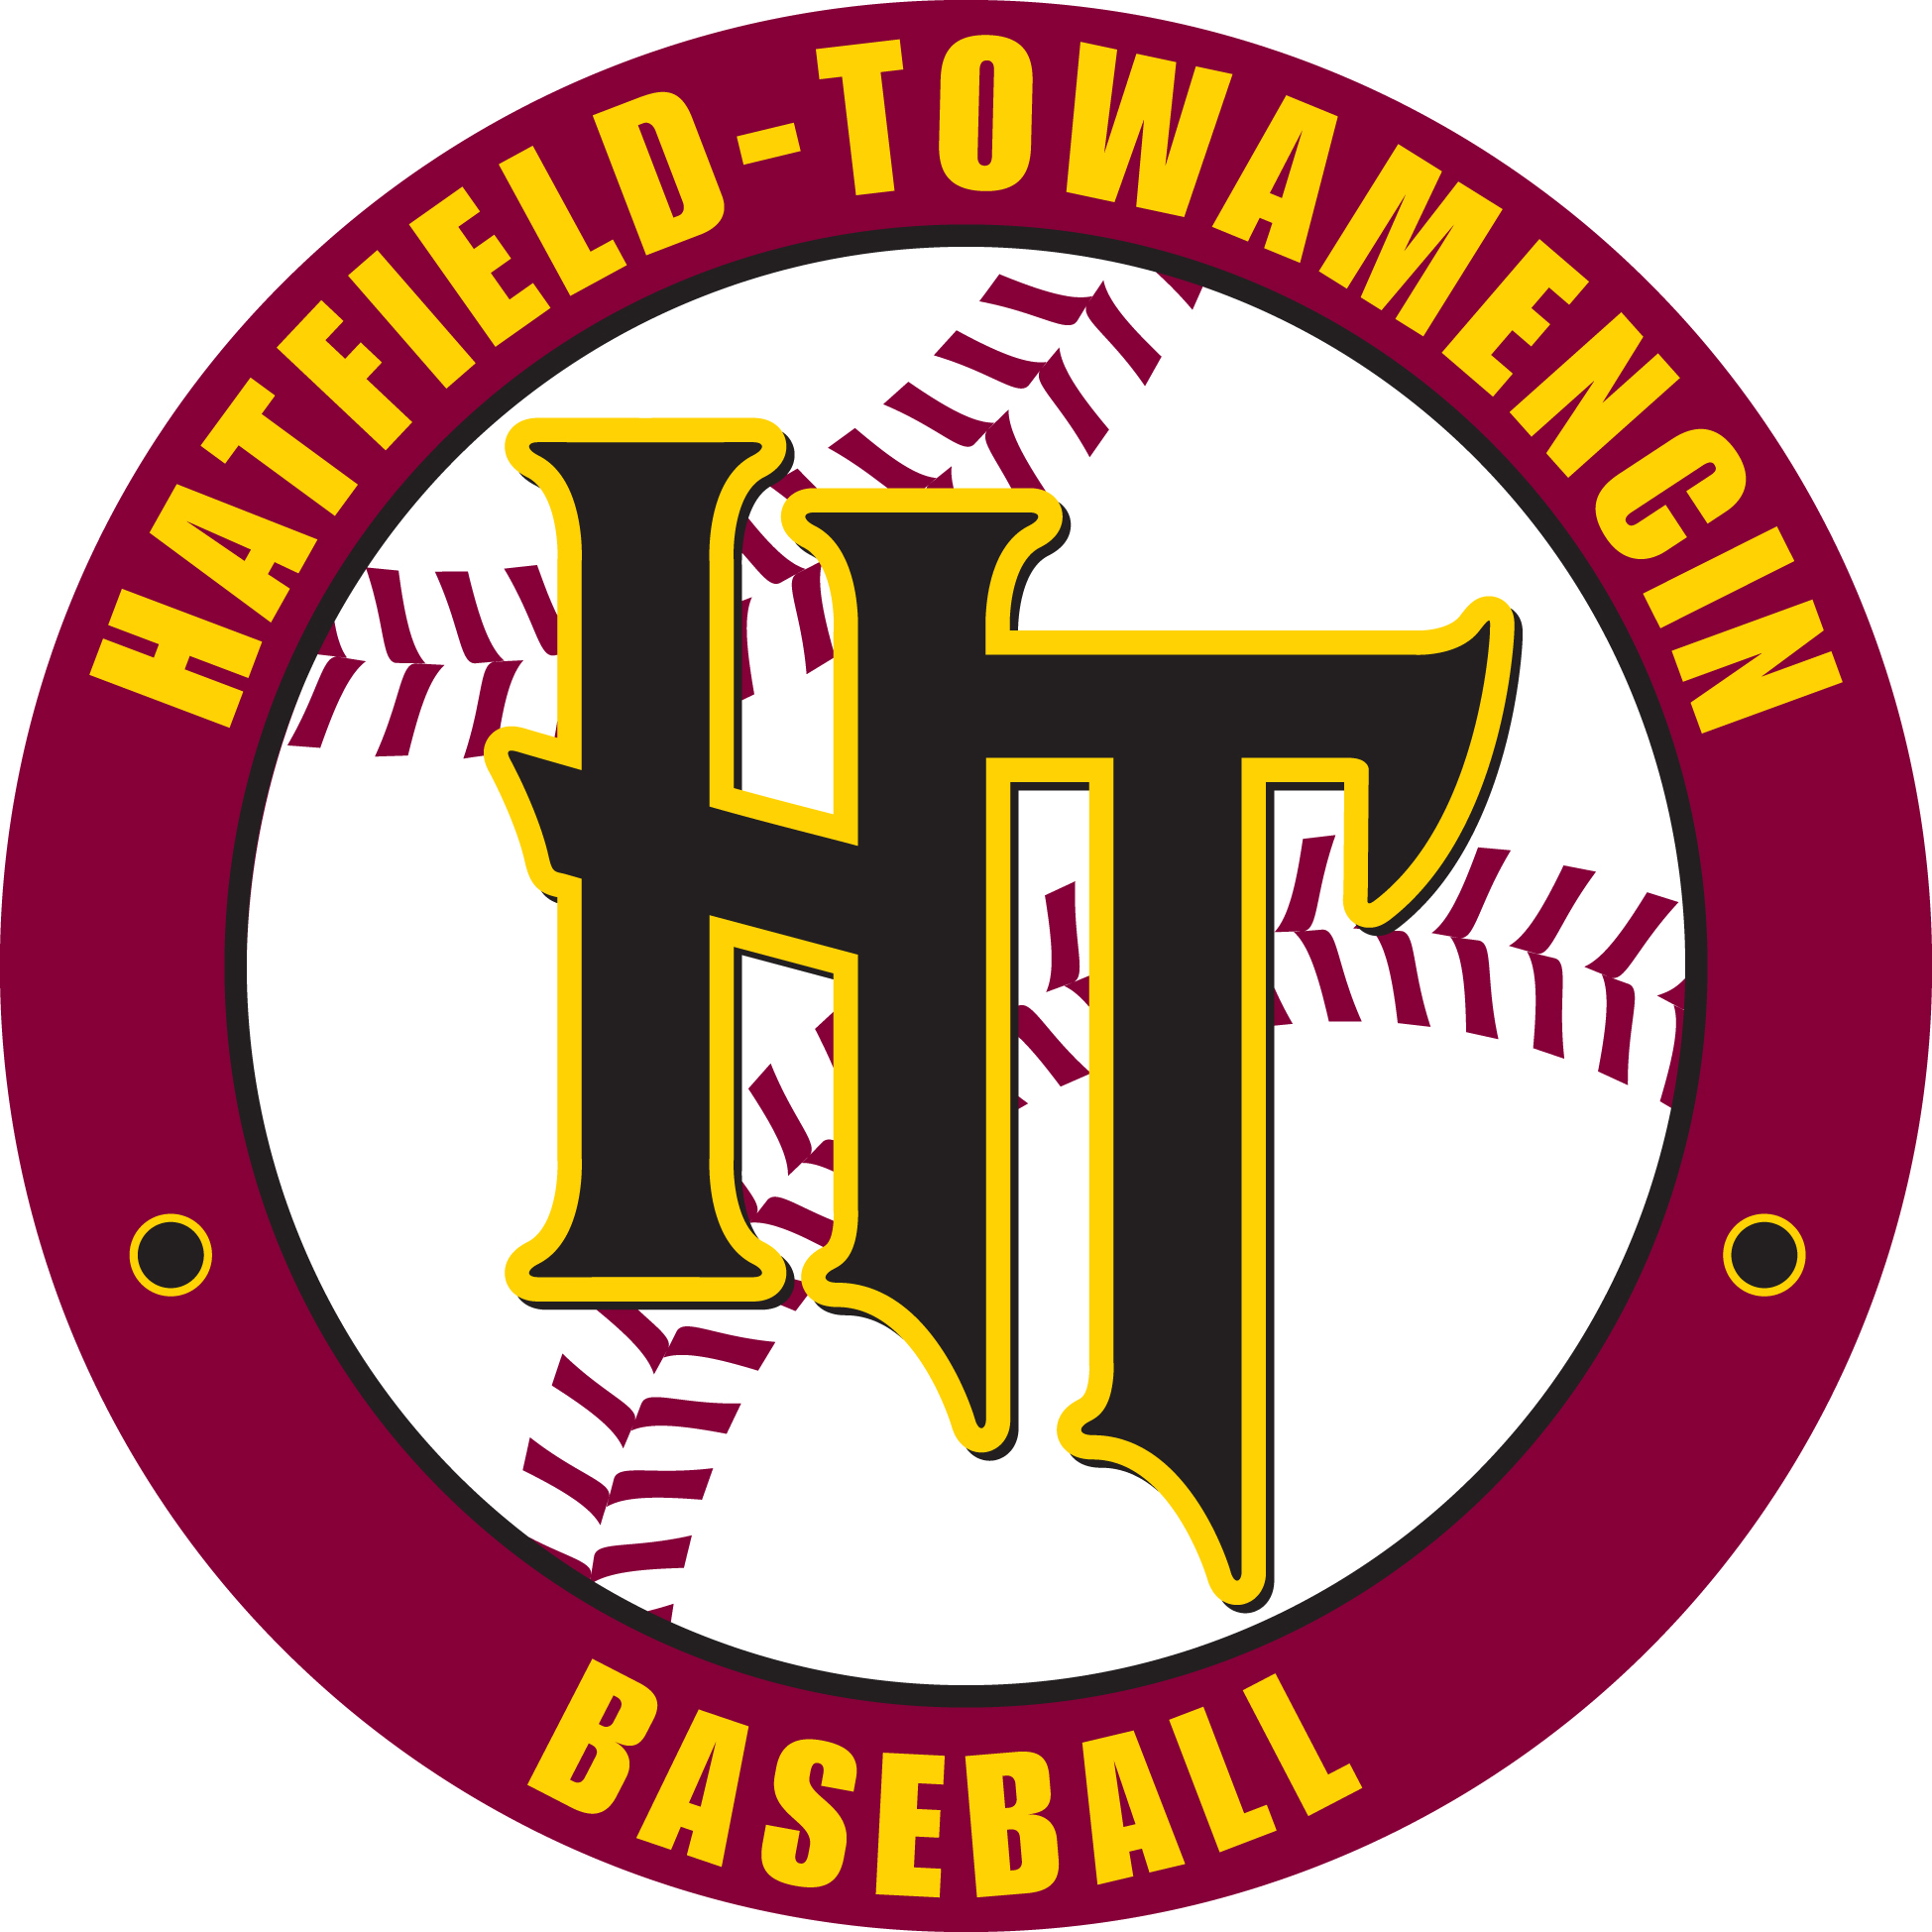 Hatfield-Towamencin Baseball Merger